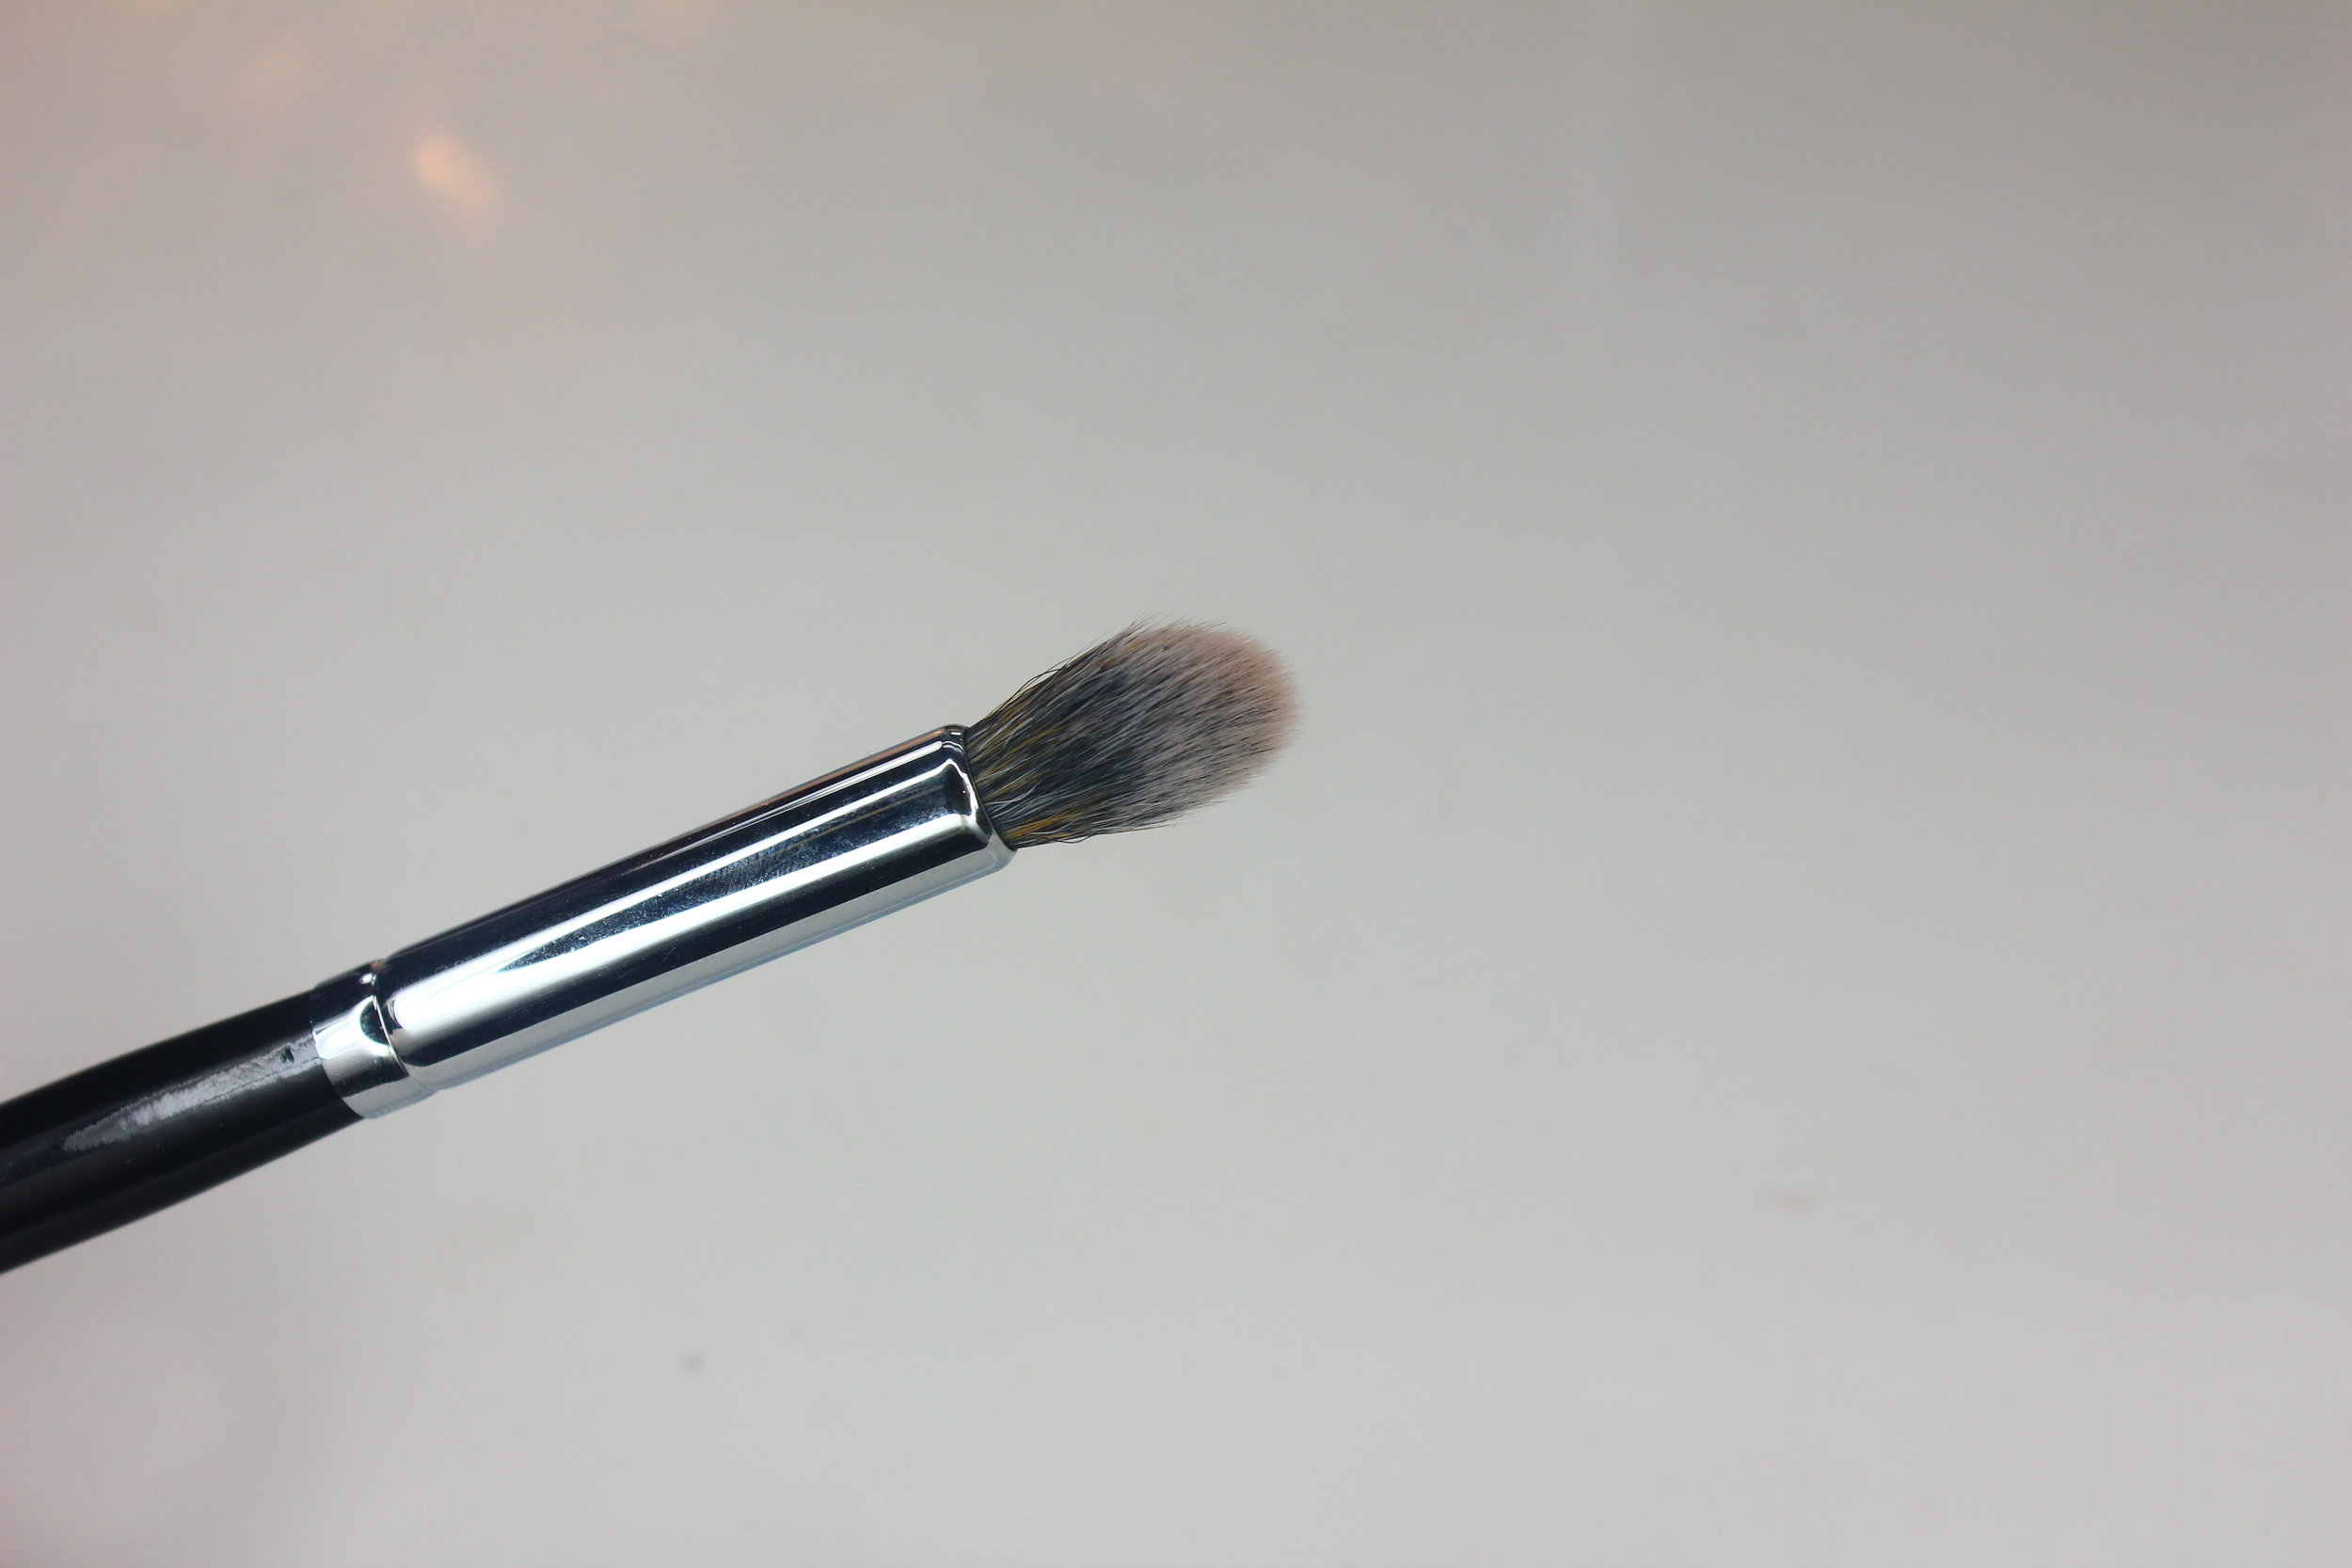 Morphe Brushes 2 - E22 Pointed Blender